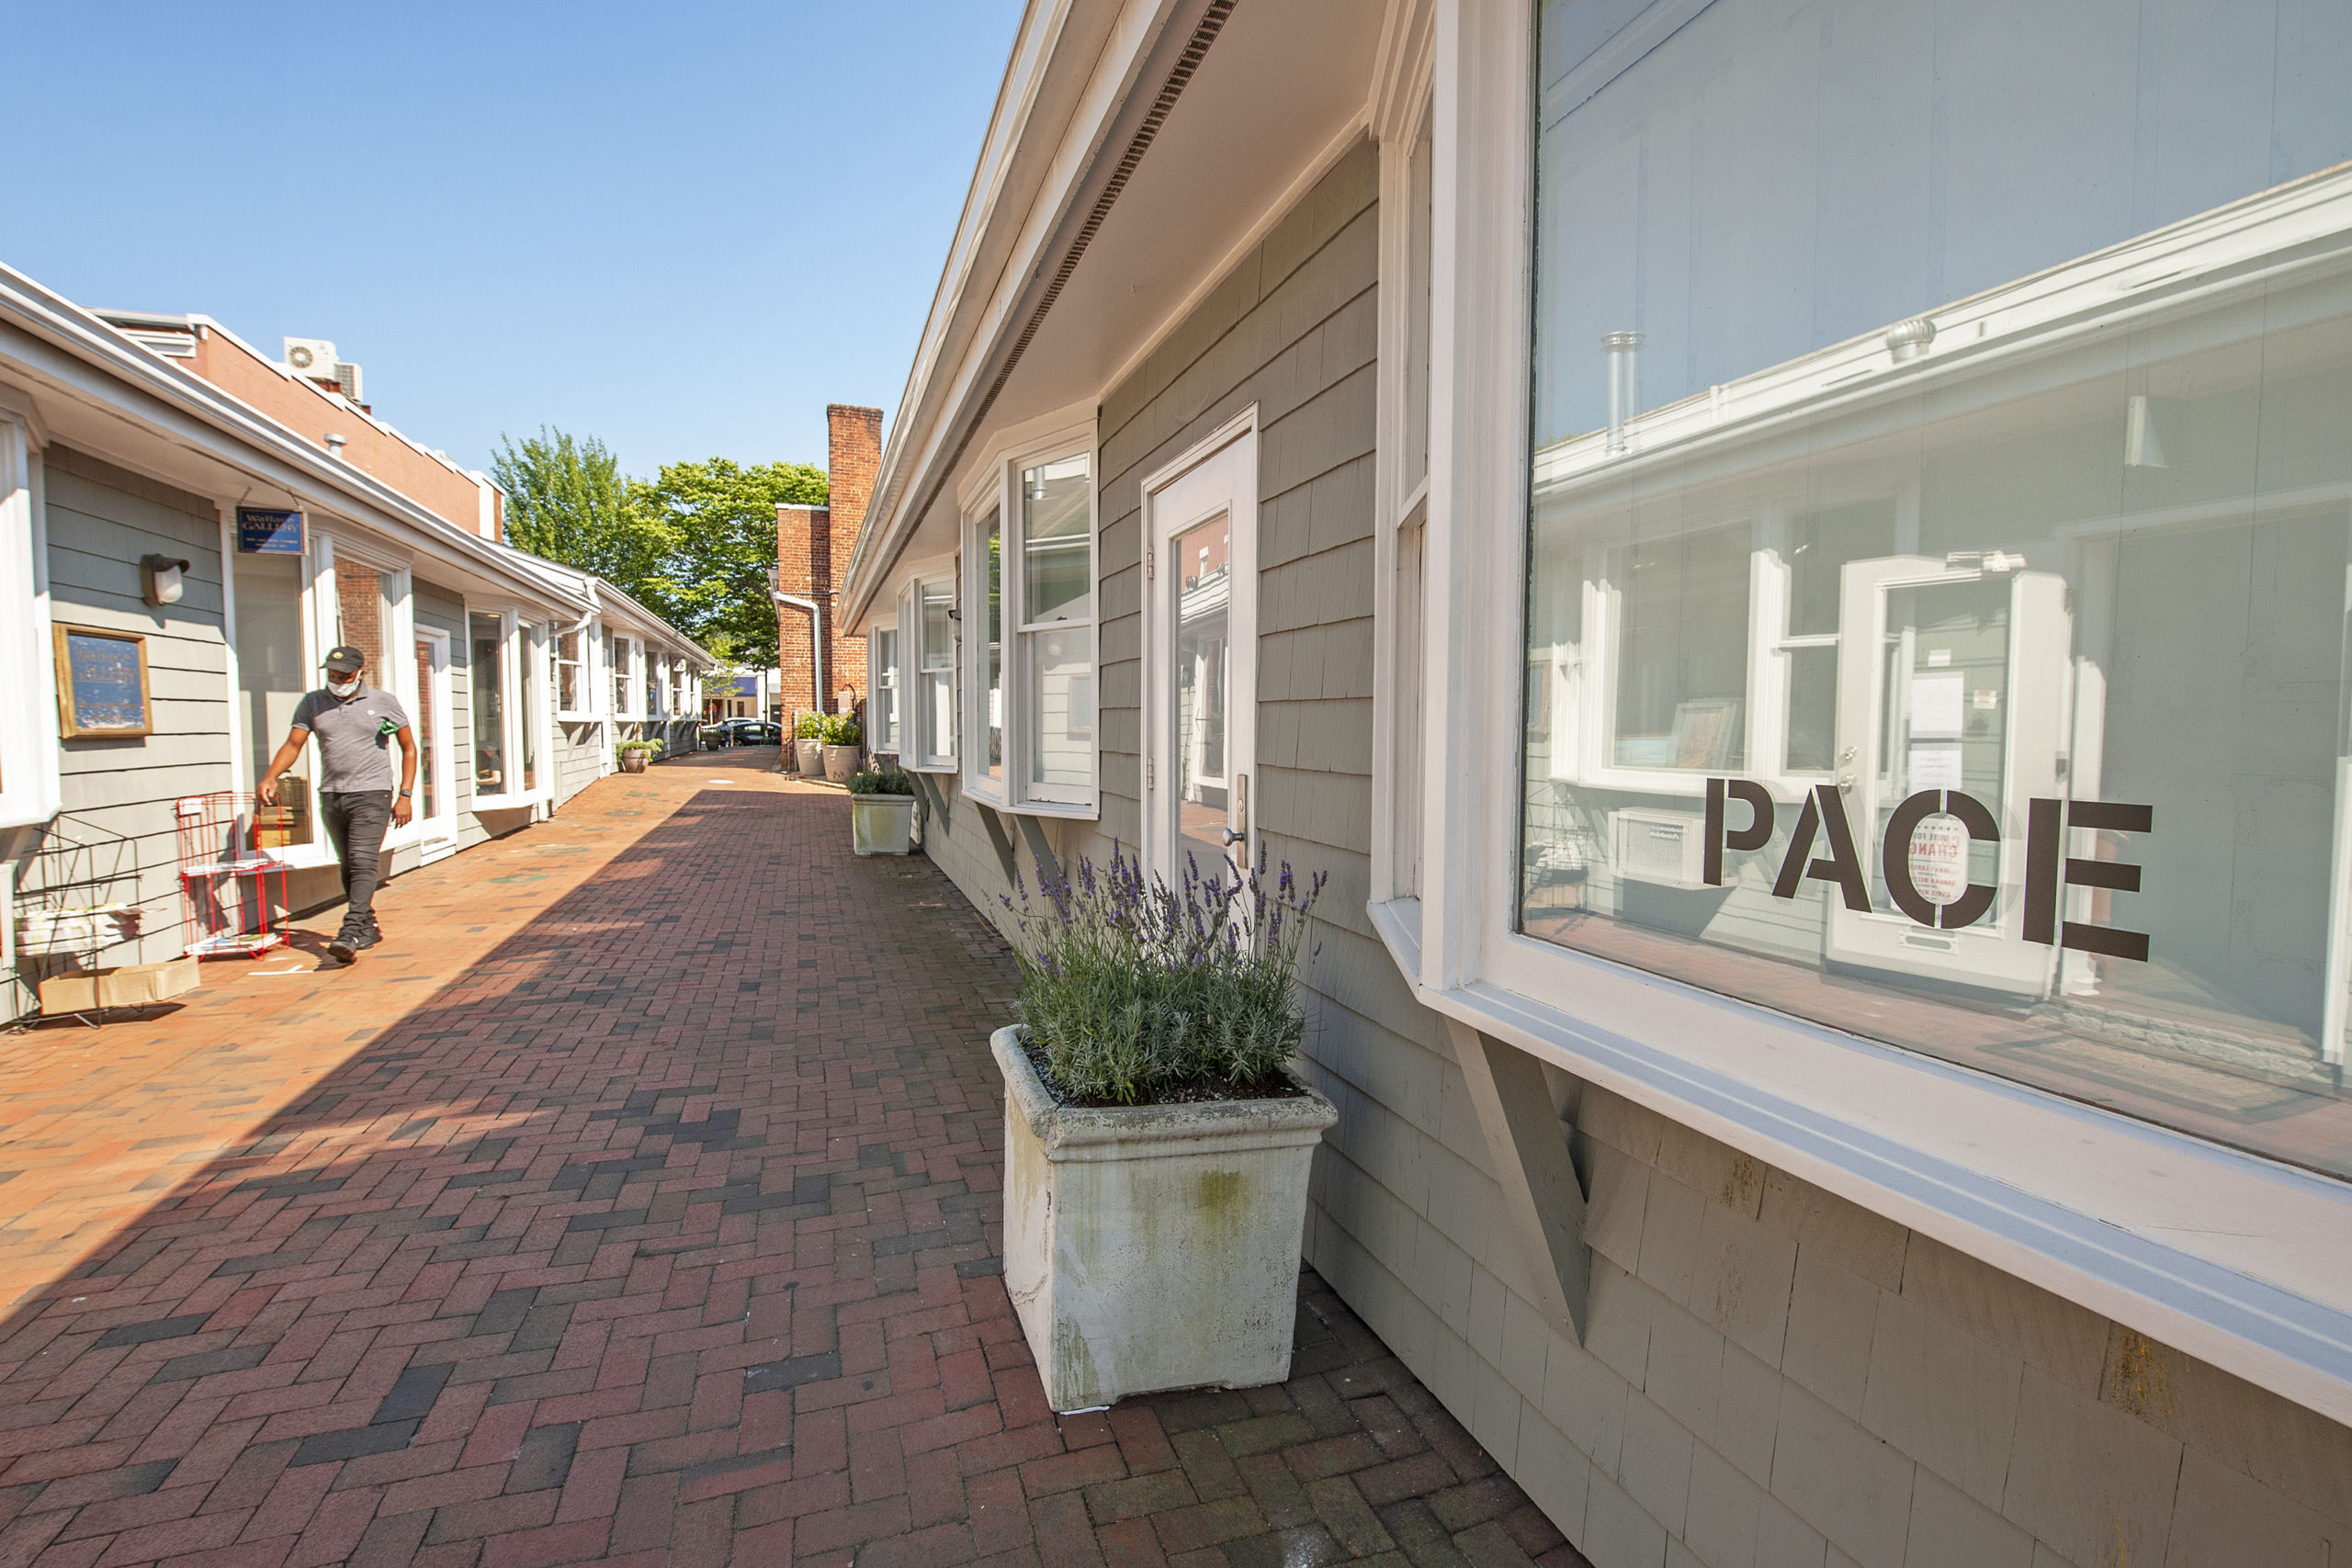 Pace Gallery in East Hampton.